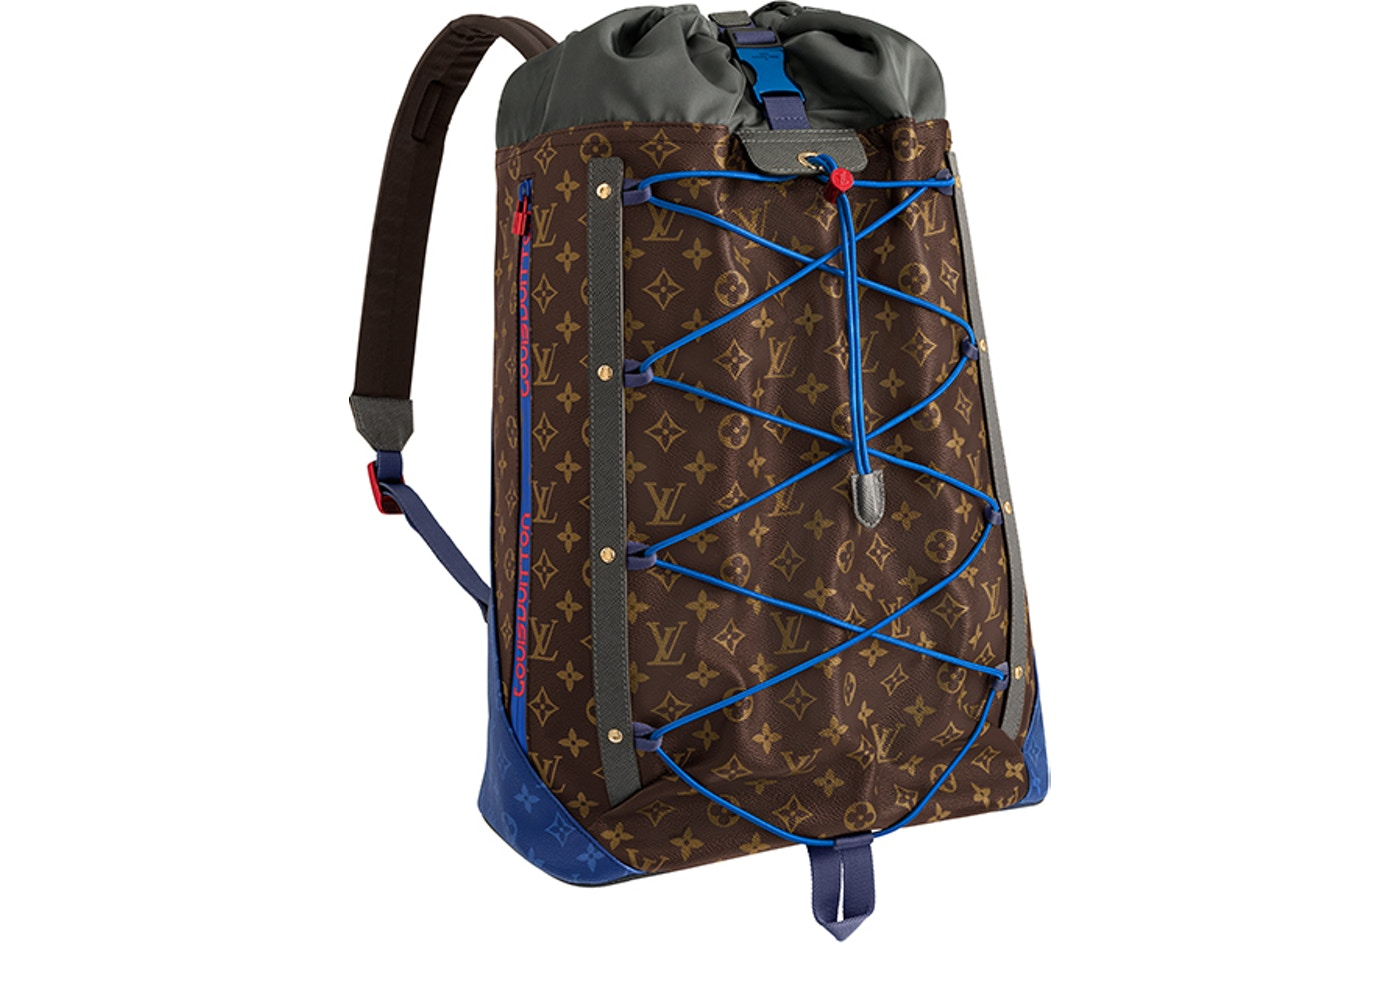 bf8621758e51 Louis Vuitton Backpack Monogram Outdoor Canvas Brown Multicolor. Monogram  Outdoor Canvas Brown Multicolor